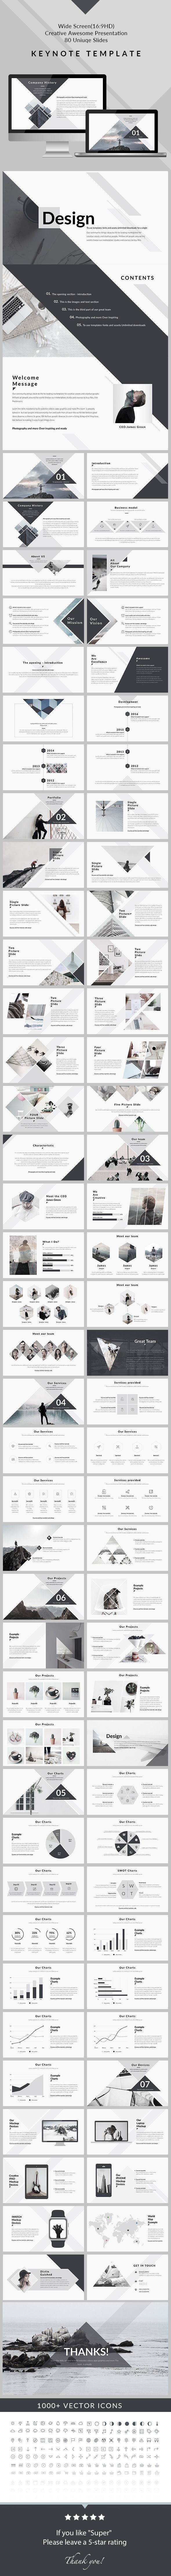 Design - Clean & Creative Keynote Template - Creative Keynote Templates